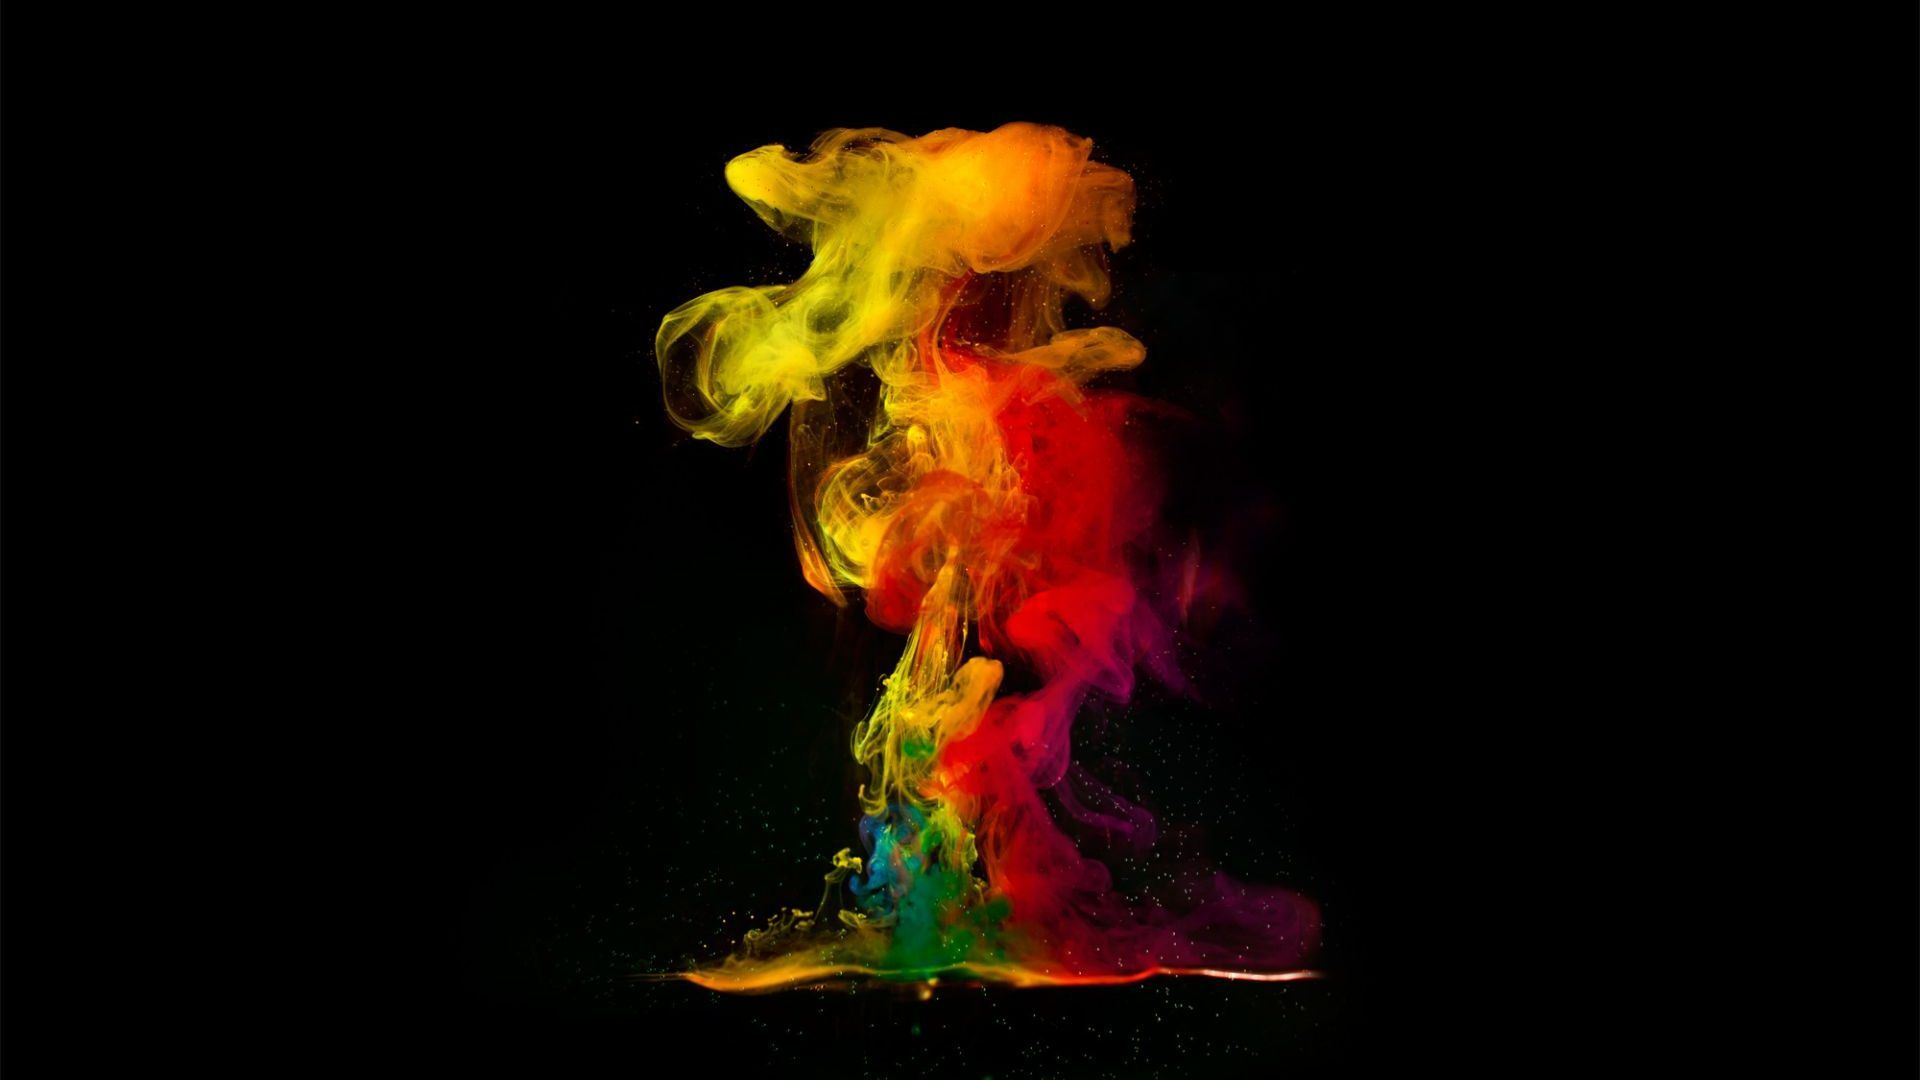 3d Abstract Color Smoke Effect Wallpaper Coda Craven 1920x1080